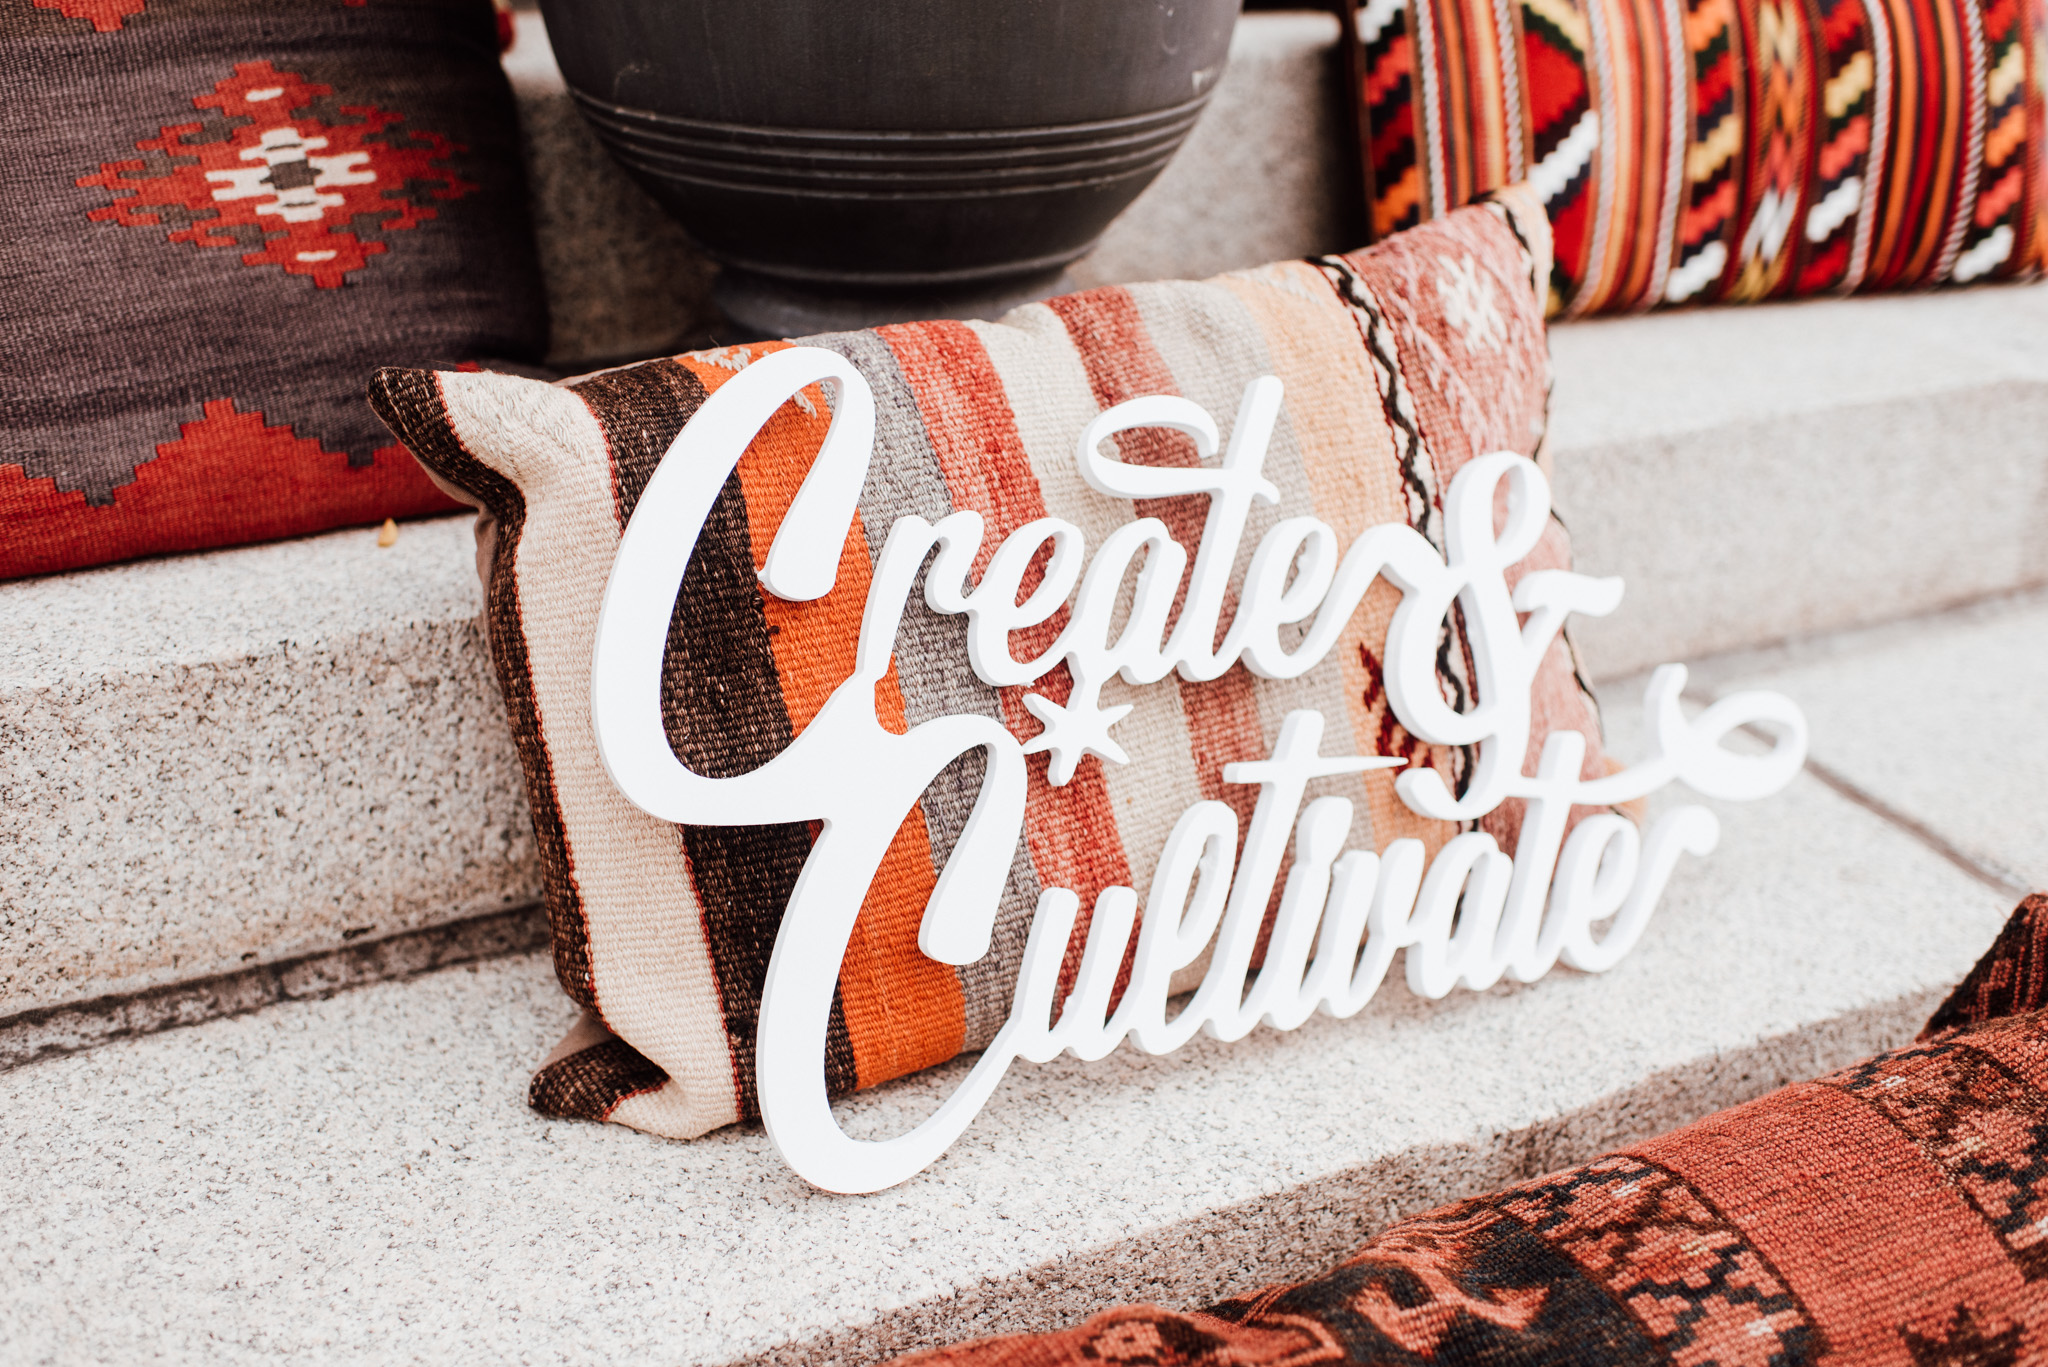 Create & Cultivate Previews_2.jpg